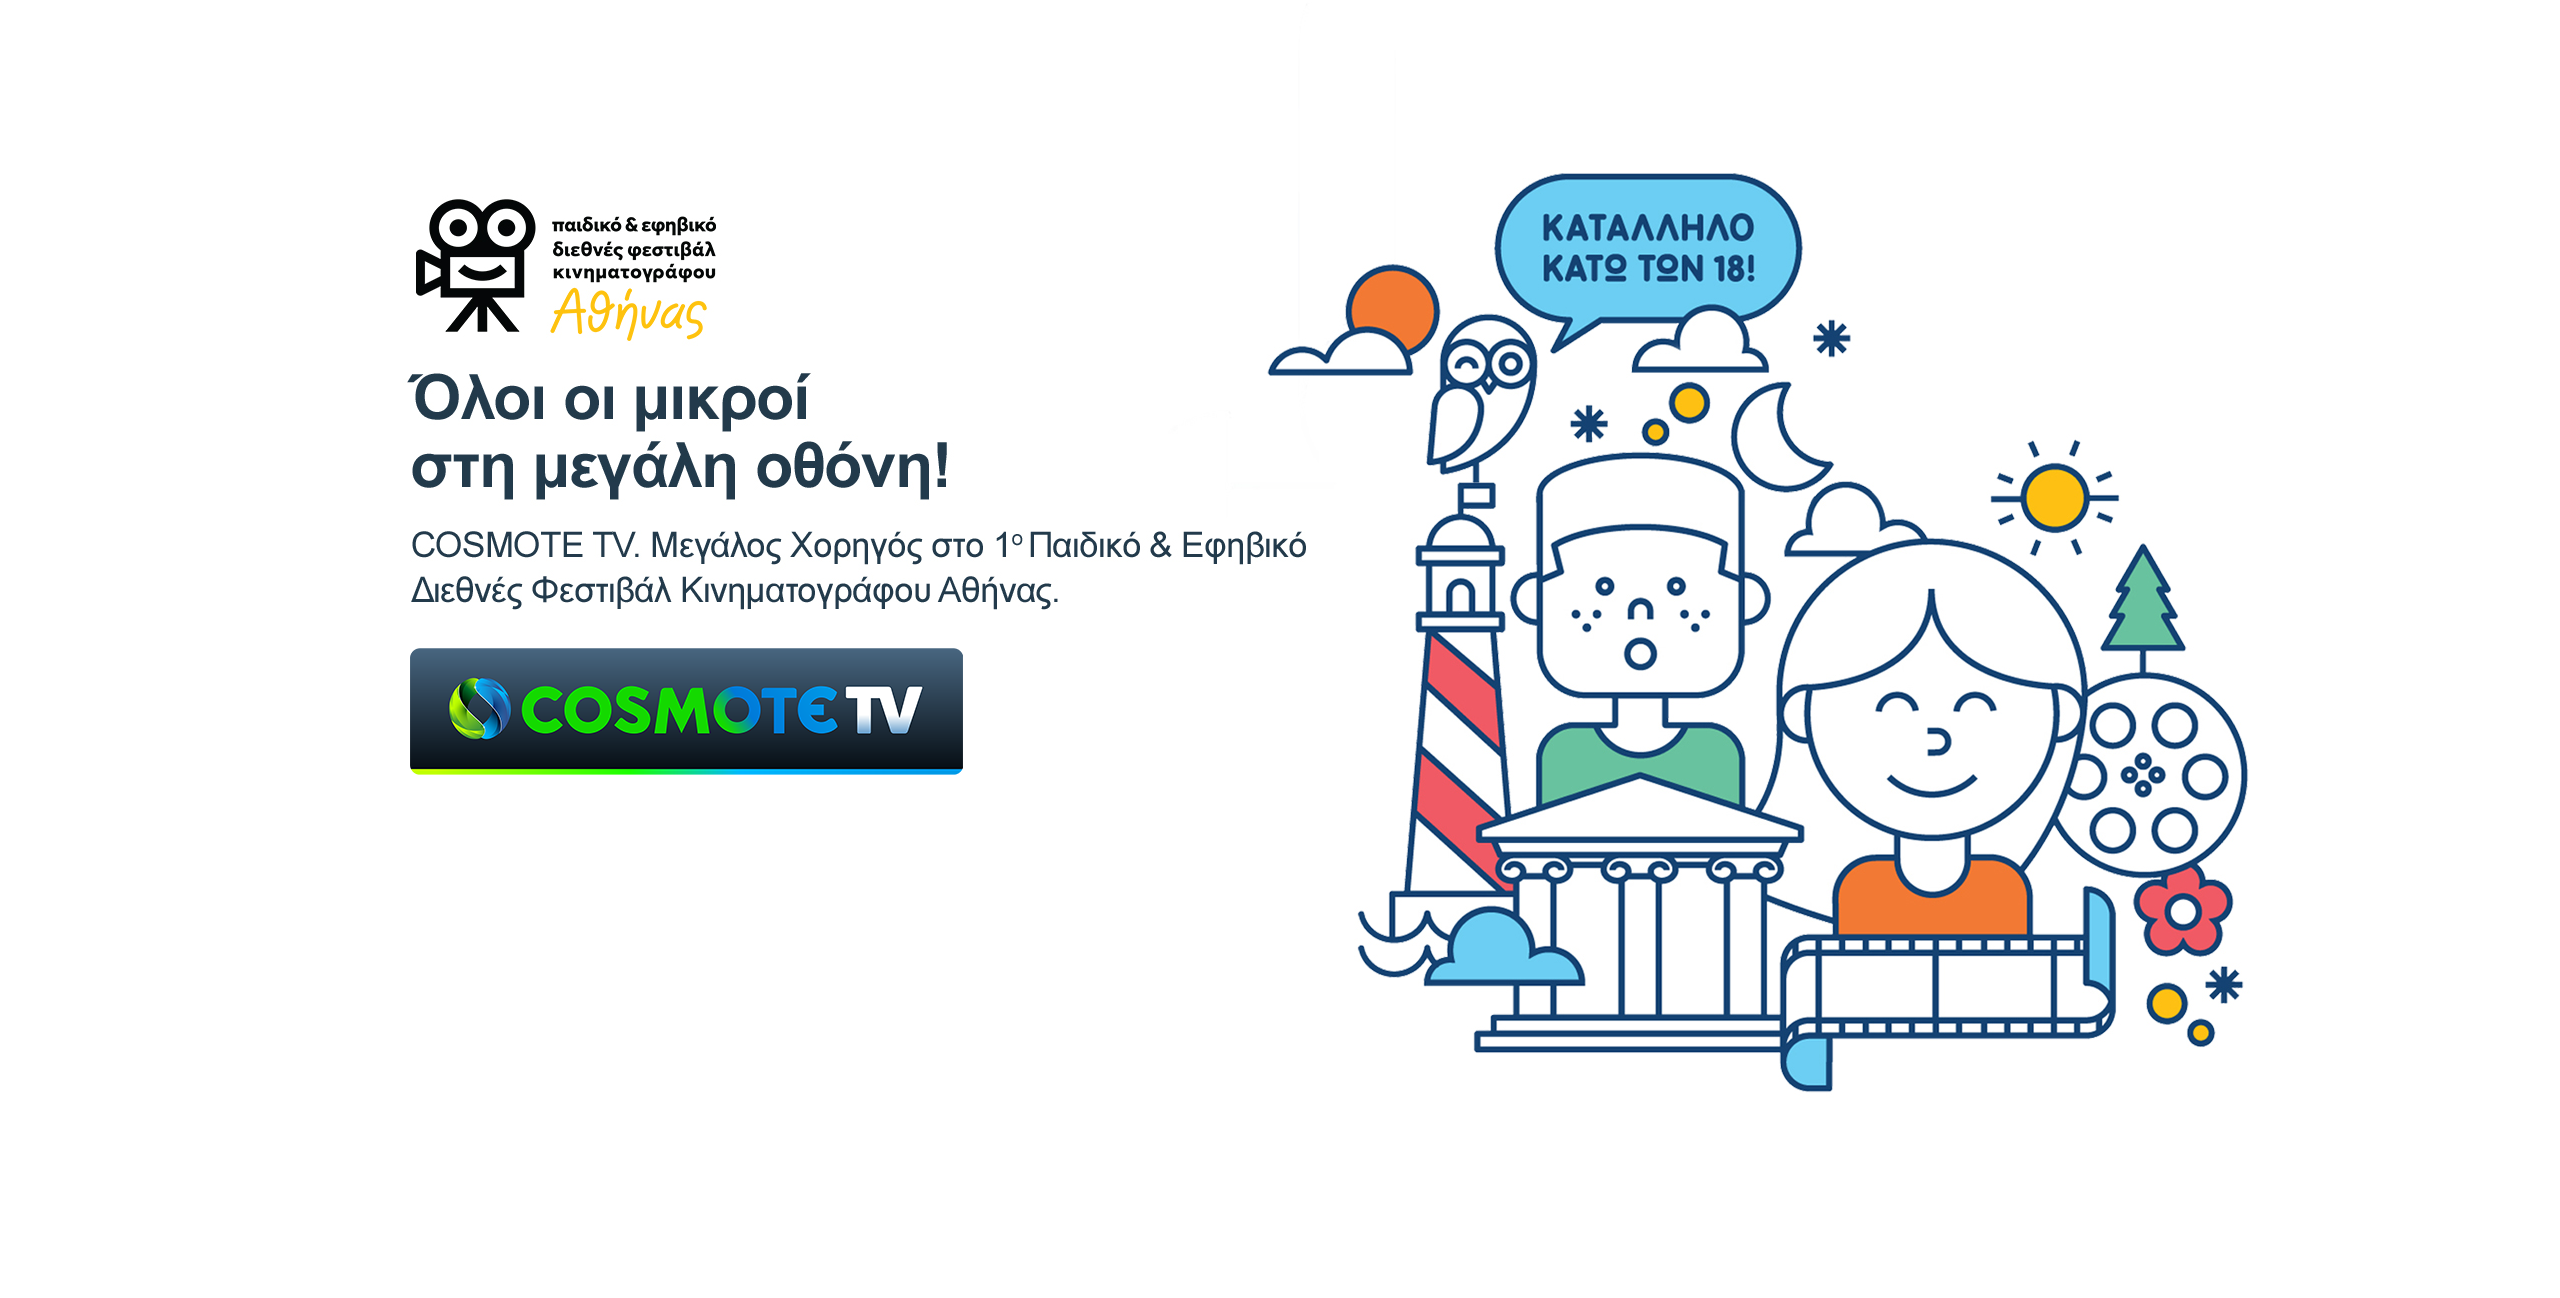 COSMOTE TV athicff